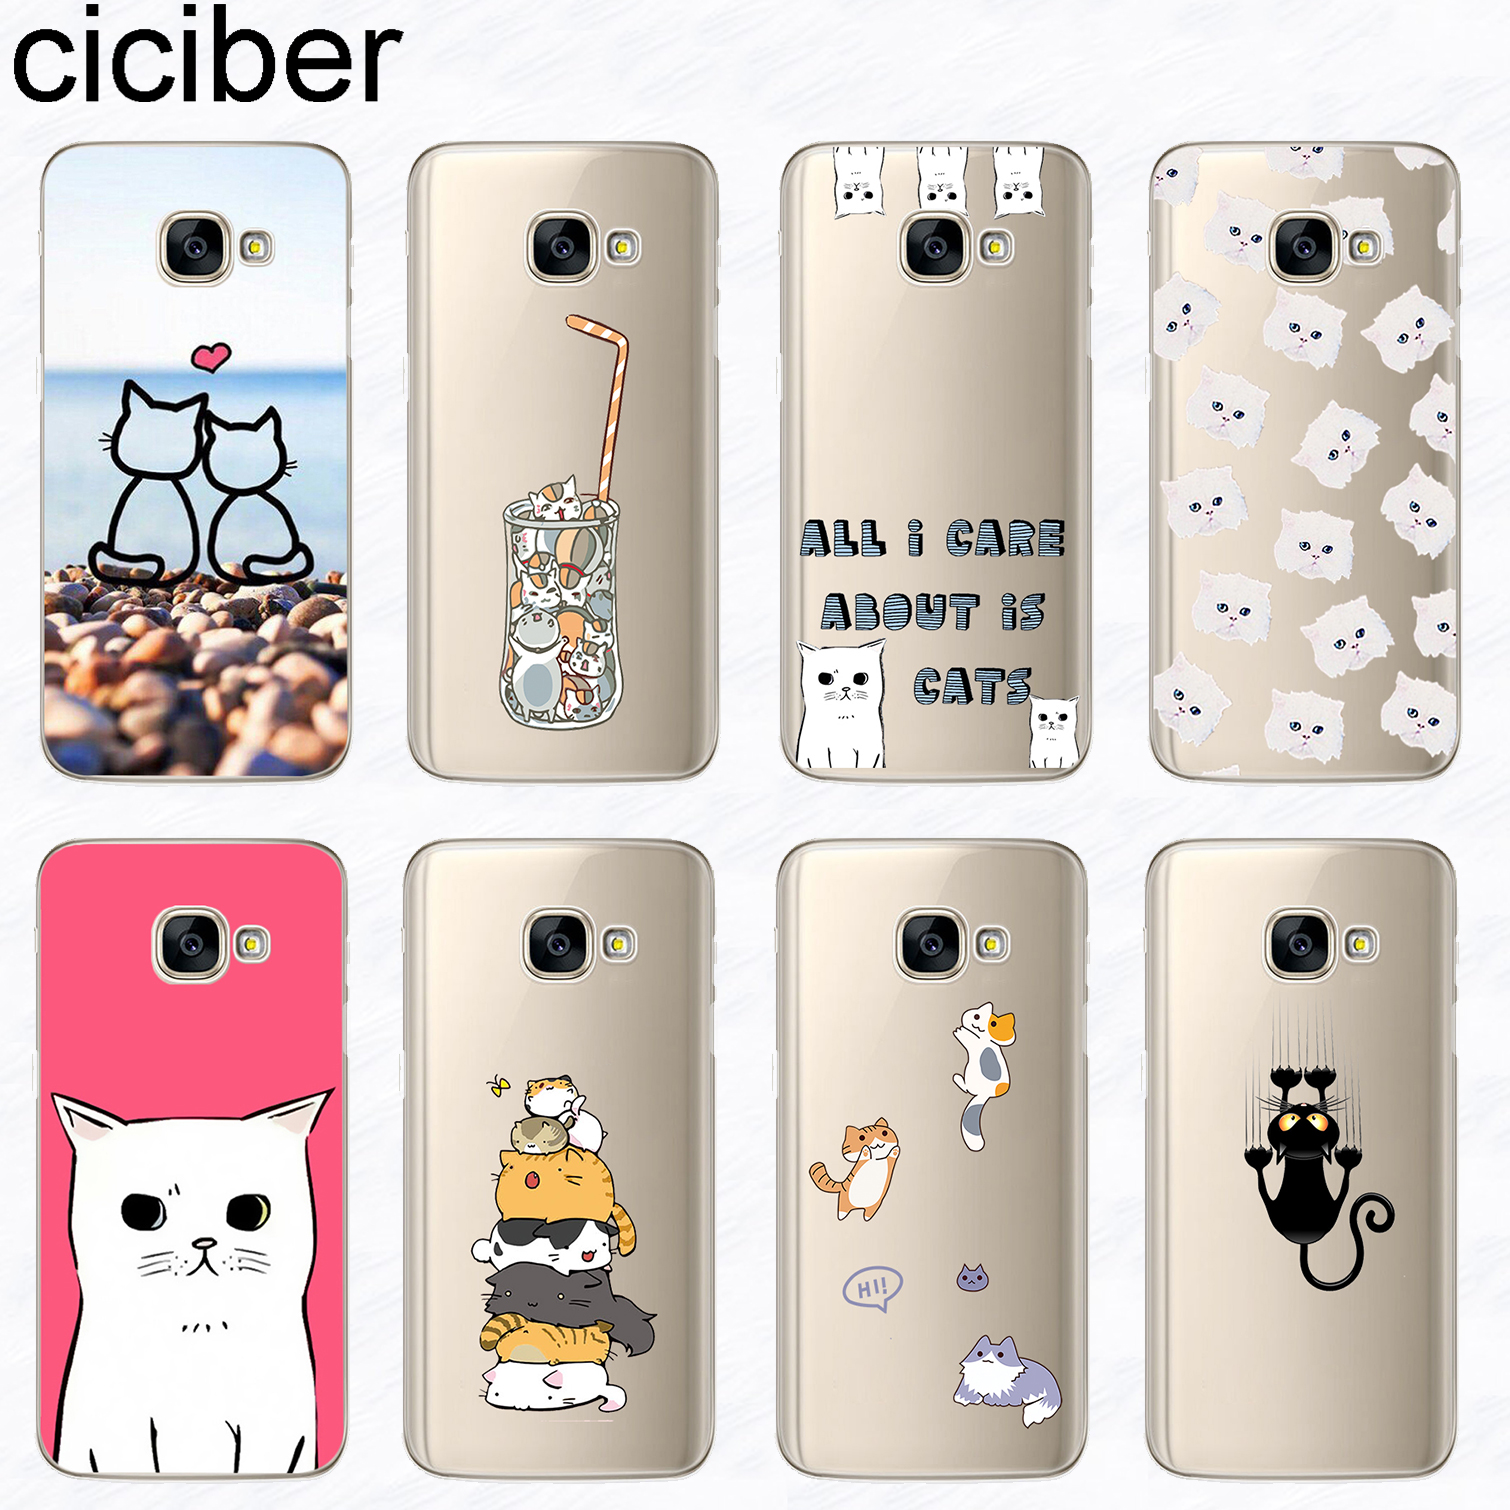 ciciber Phone <font><b>Case</b></font> for <font><b>Samsung</b></font> <font><b>Galaxy</b></font> <font><b>A8</b></font> A9 A6S Plus <font><b>2018</b></font> PRO A5 2016 A3 A7 2017 Soft Silicone Cartoon <font><b>Cat</b></font> Kitten Cover Funda image